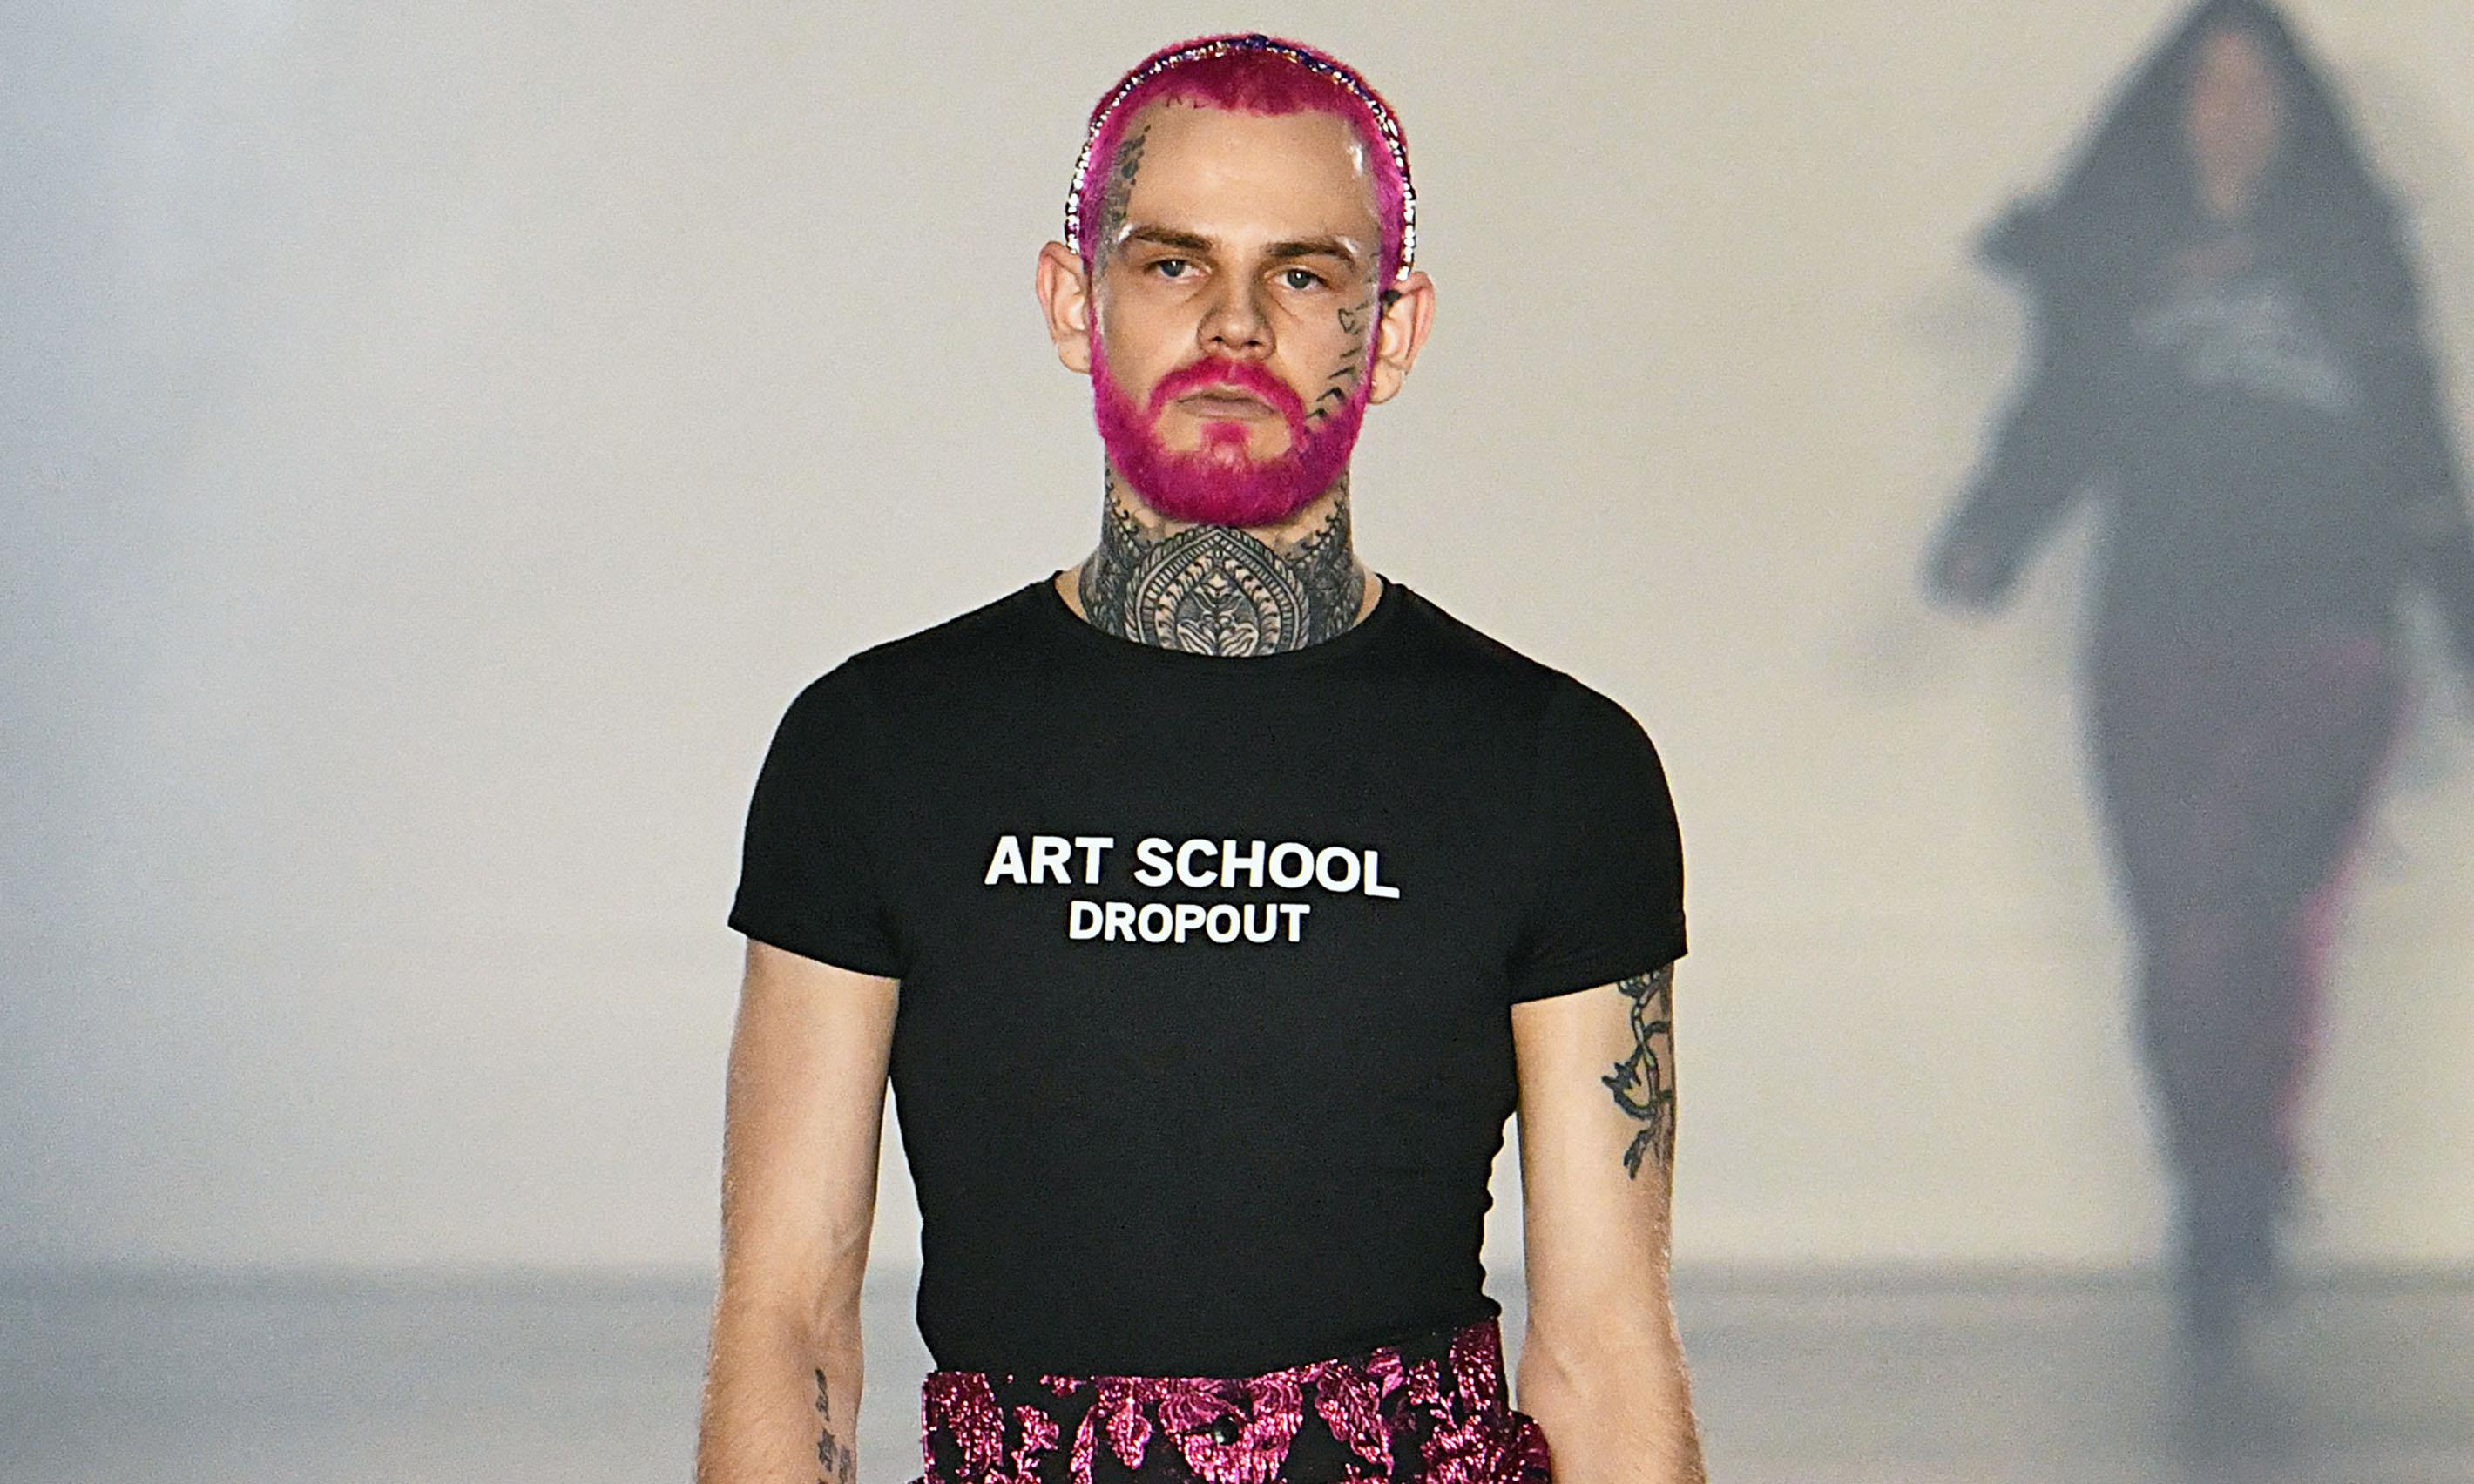 Art School to explore 'queer sensuality' at London fashion week